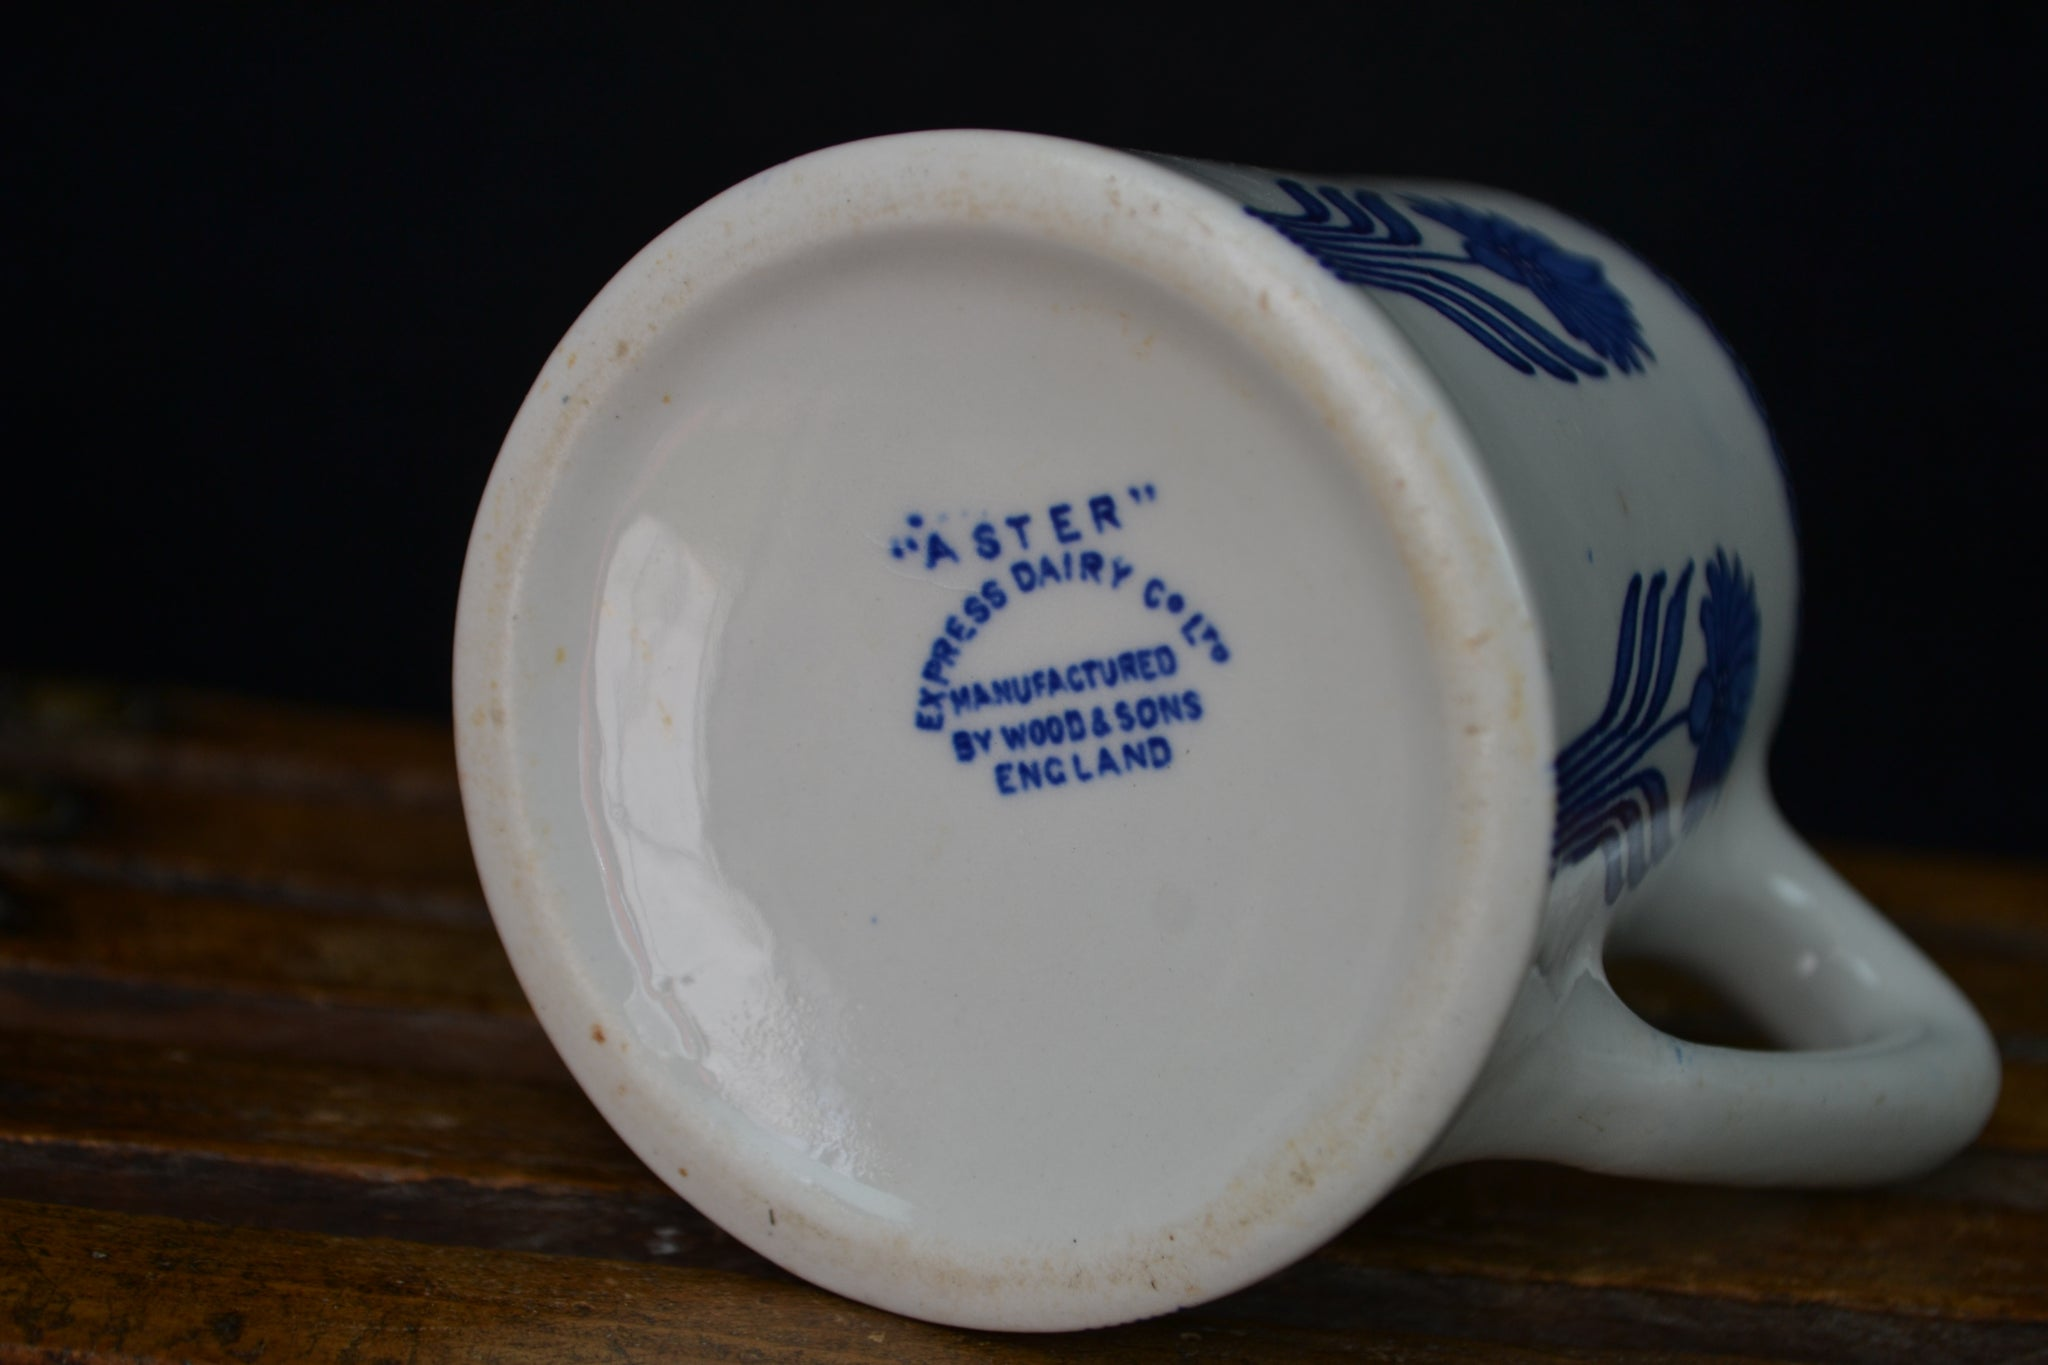 Aster Pattern cream jug for the 'Express Dairy Co Ltd.'